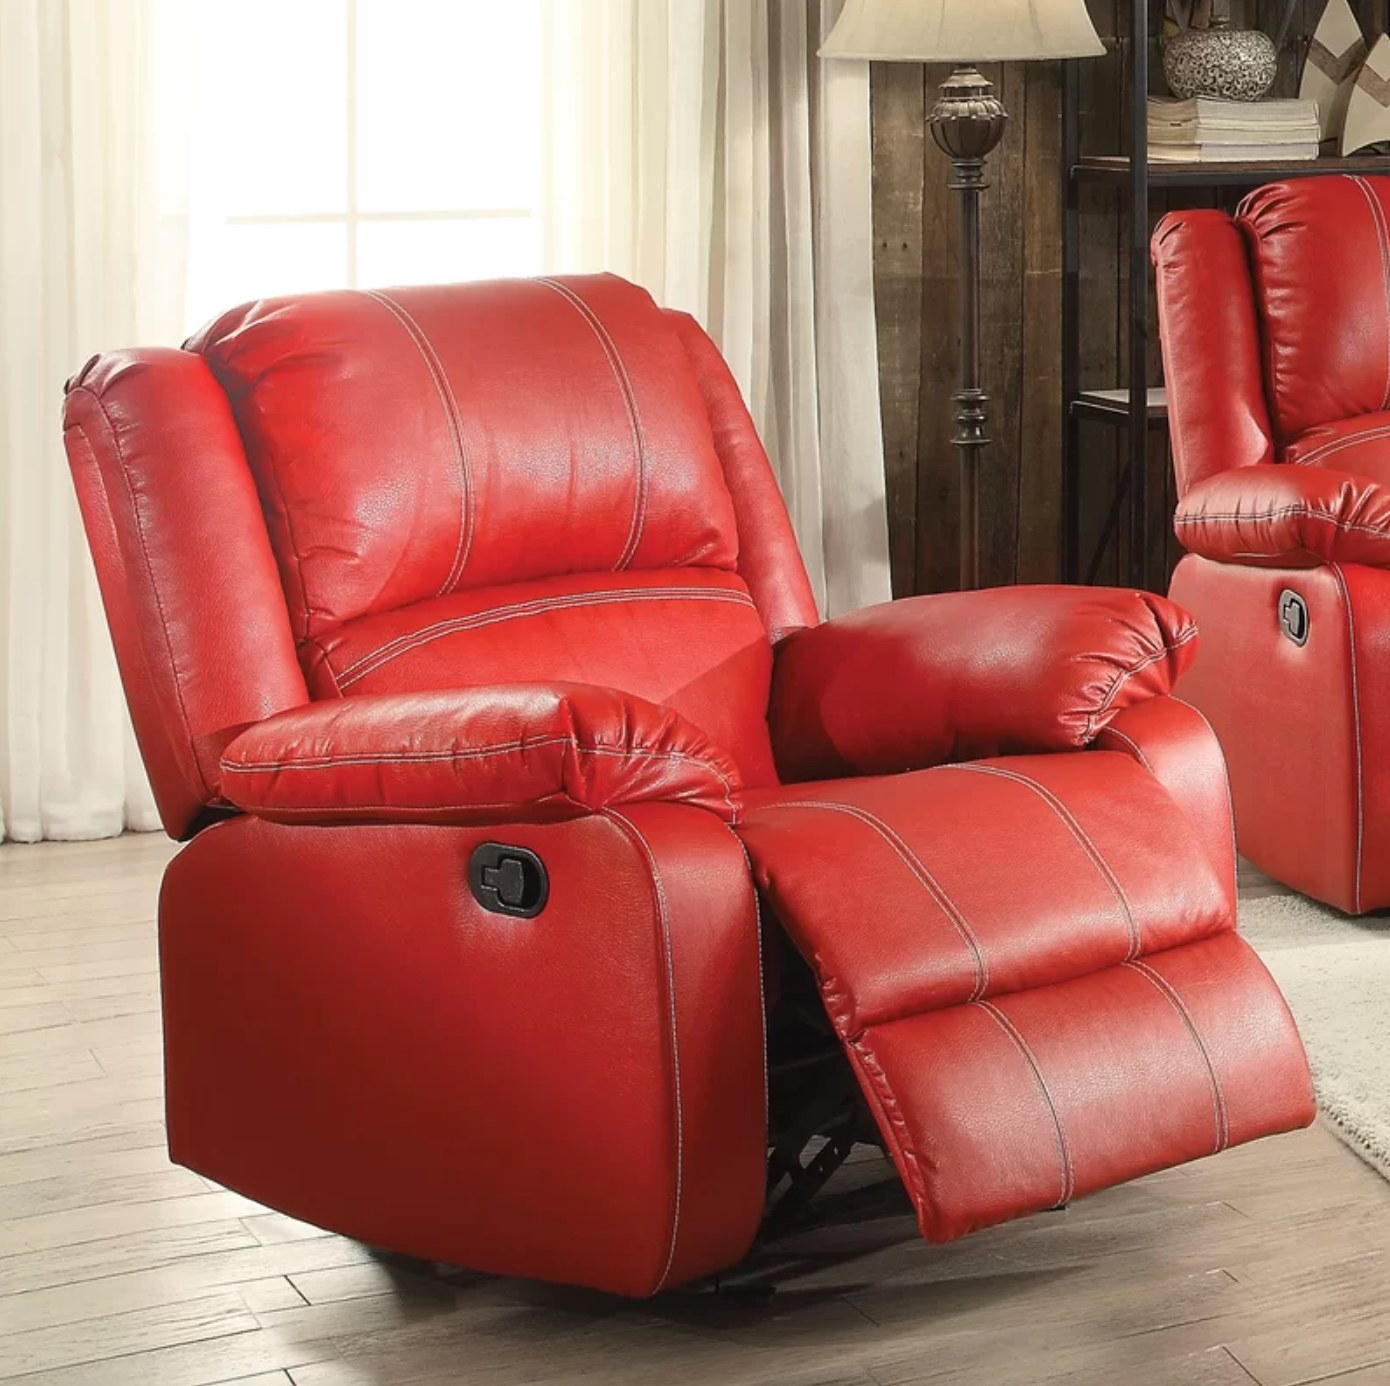 The leather recliner in red